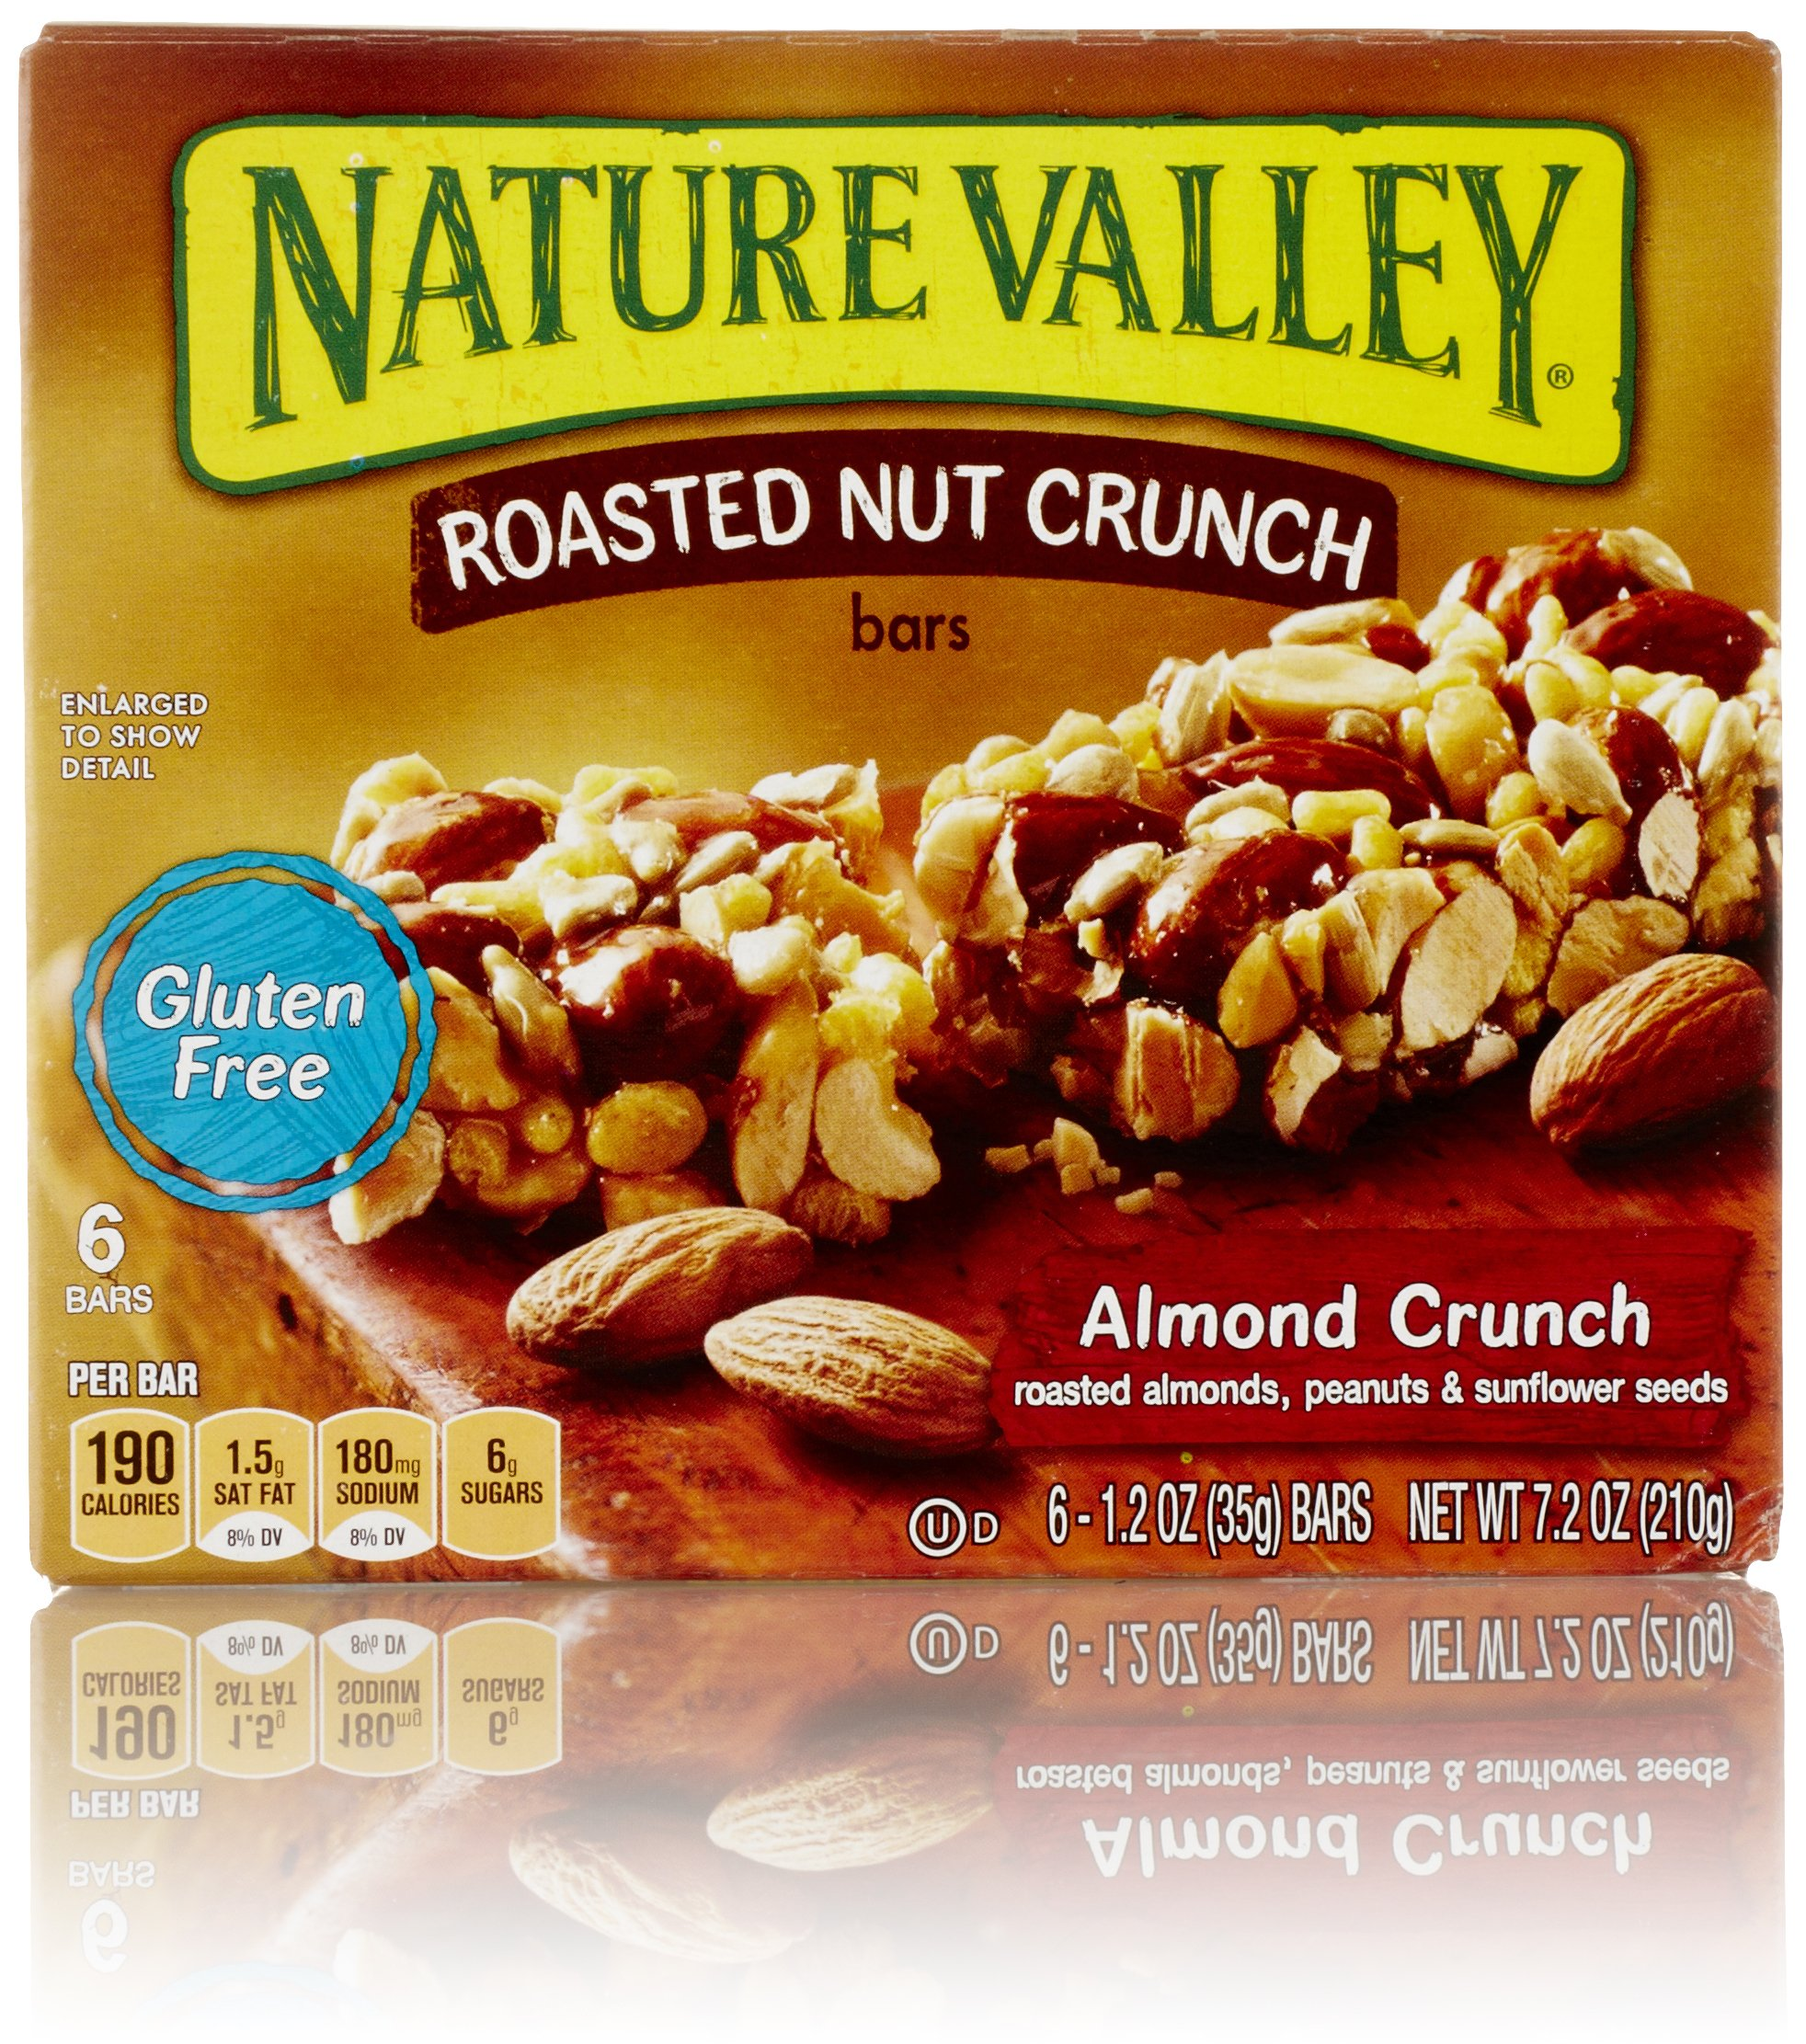 Nature Valley, Gluten Free Roasted Nut Crunch Bar, Almond Crunch, 1.24 oz Bars, 6 Count